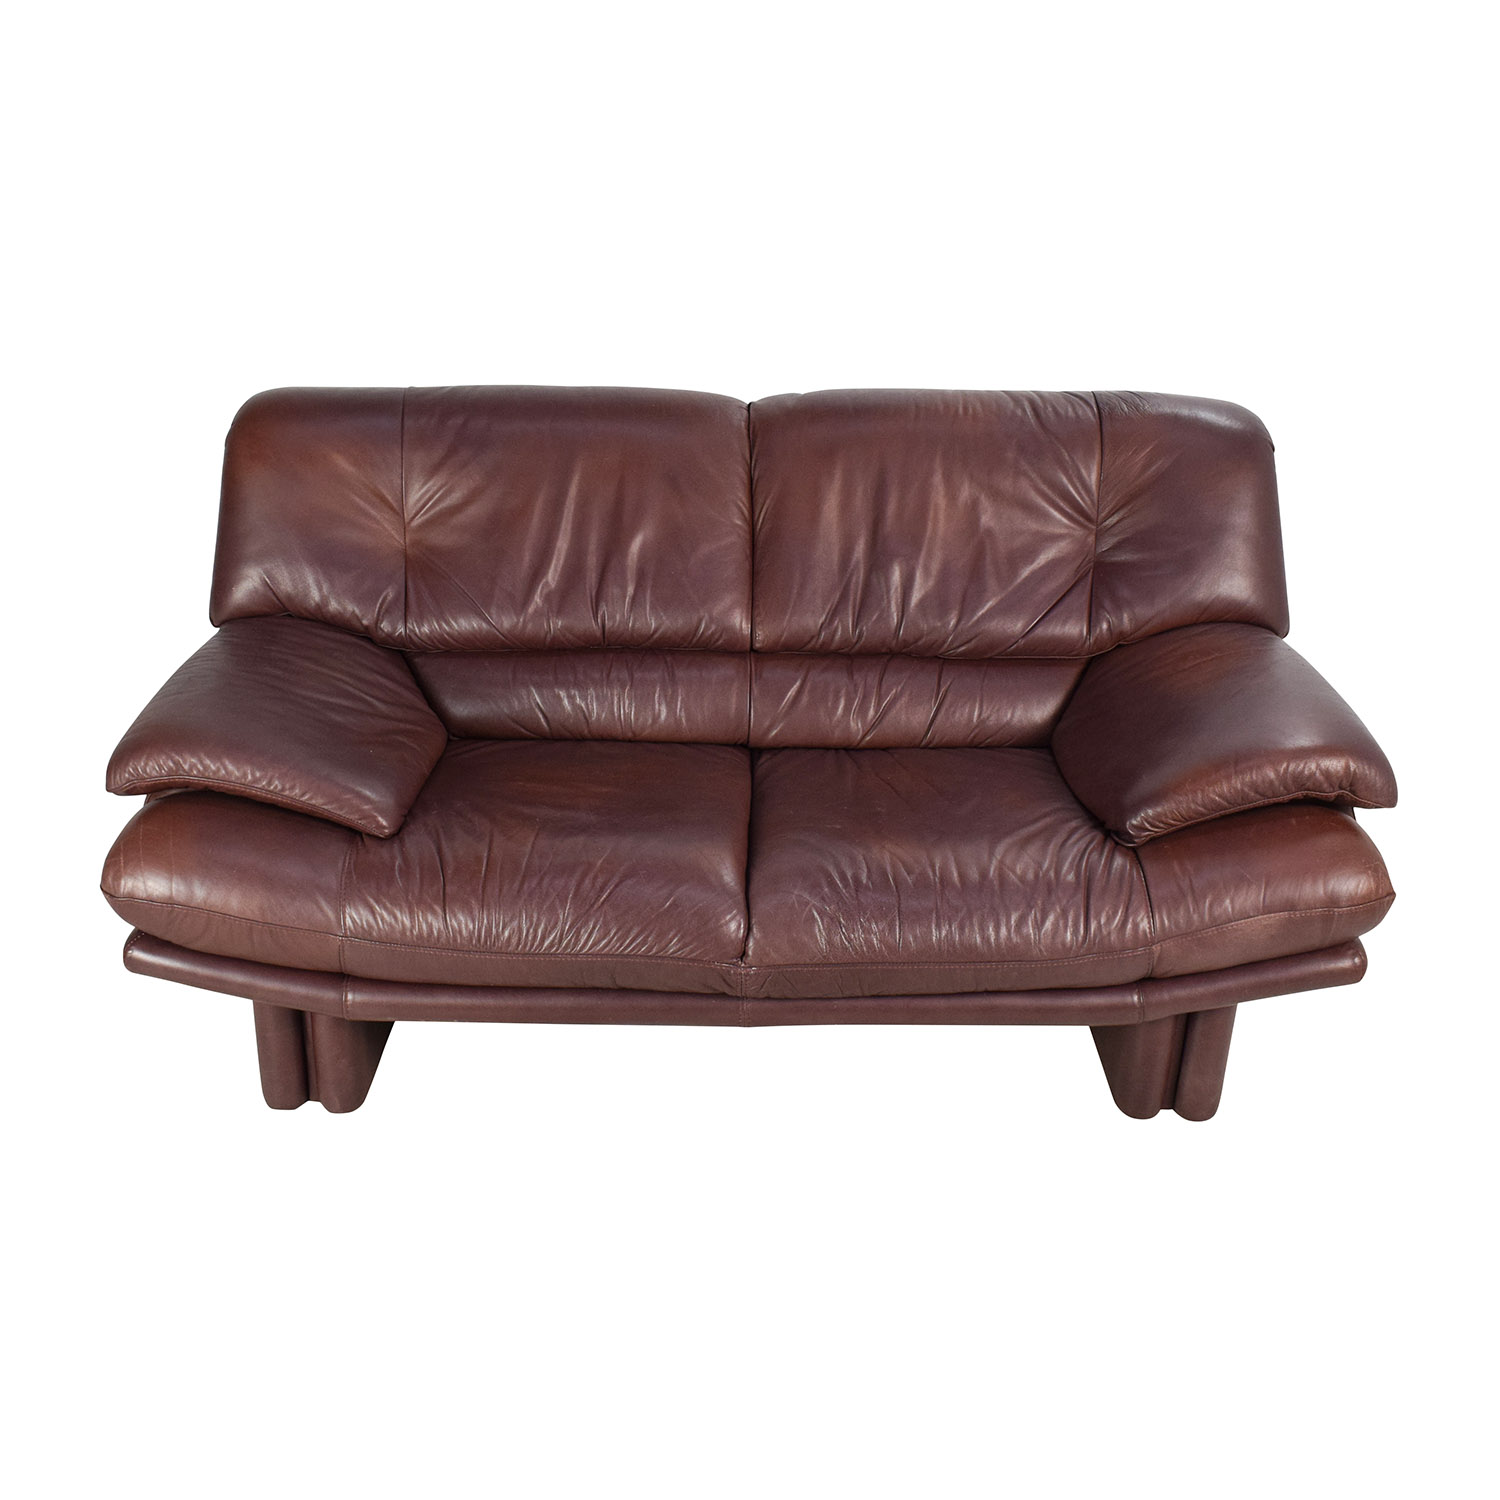 Sofa For Sale Online 67 Off Maurice Villency Maurice Villency Brown Leather Sofa Sofas